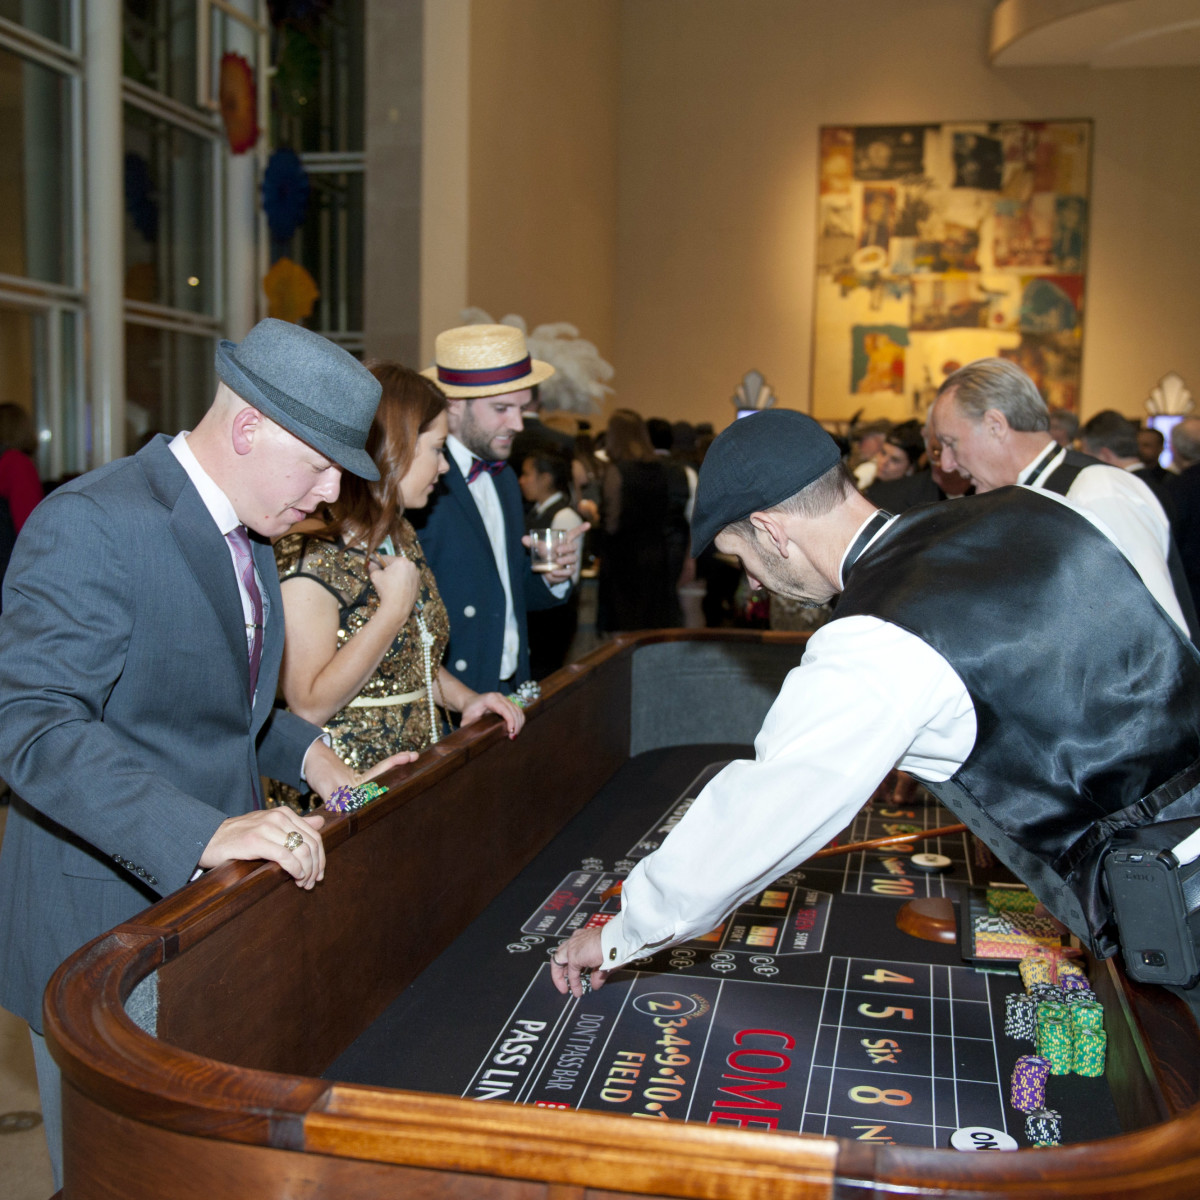 Guests playing casino games at DMA Speakeasy